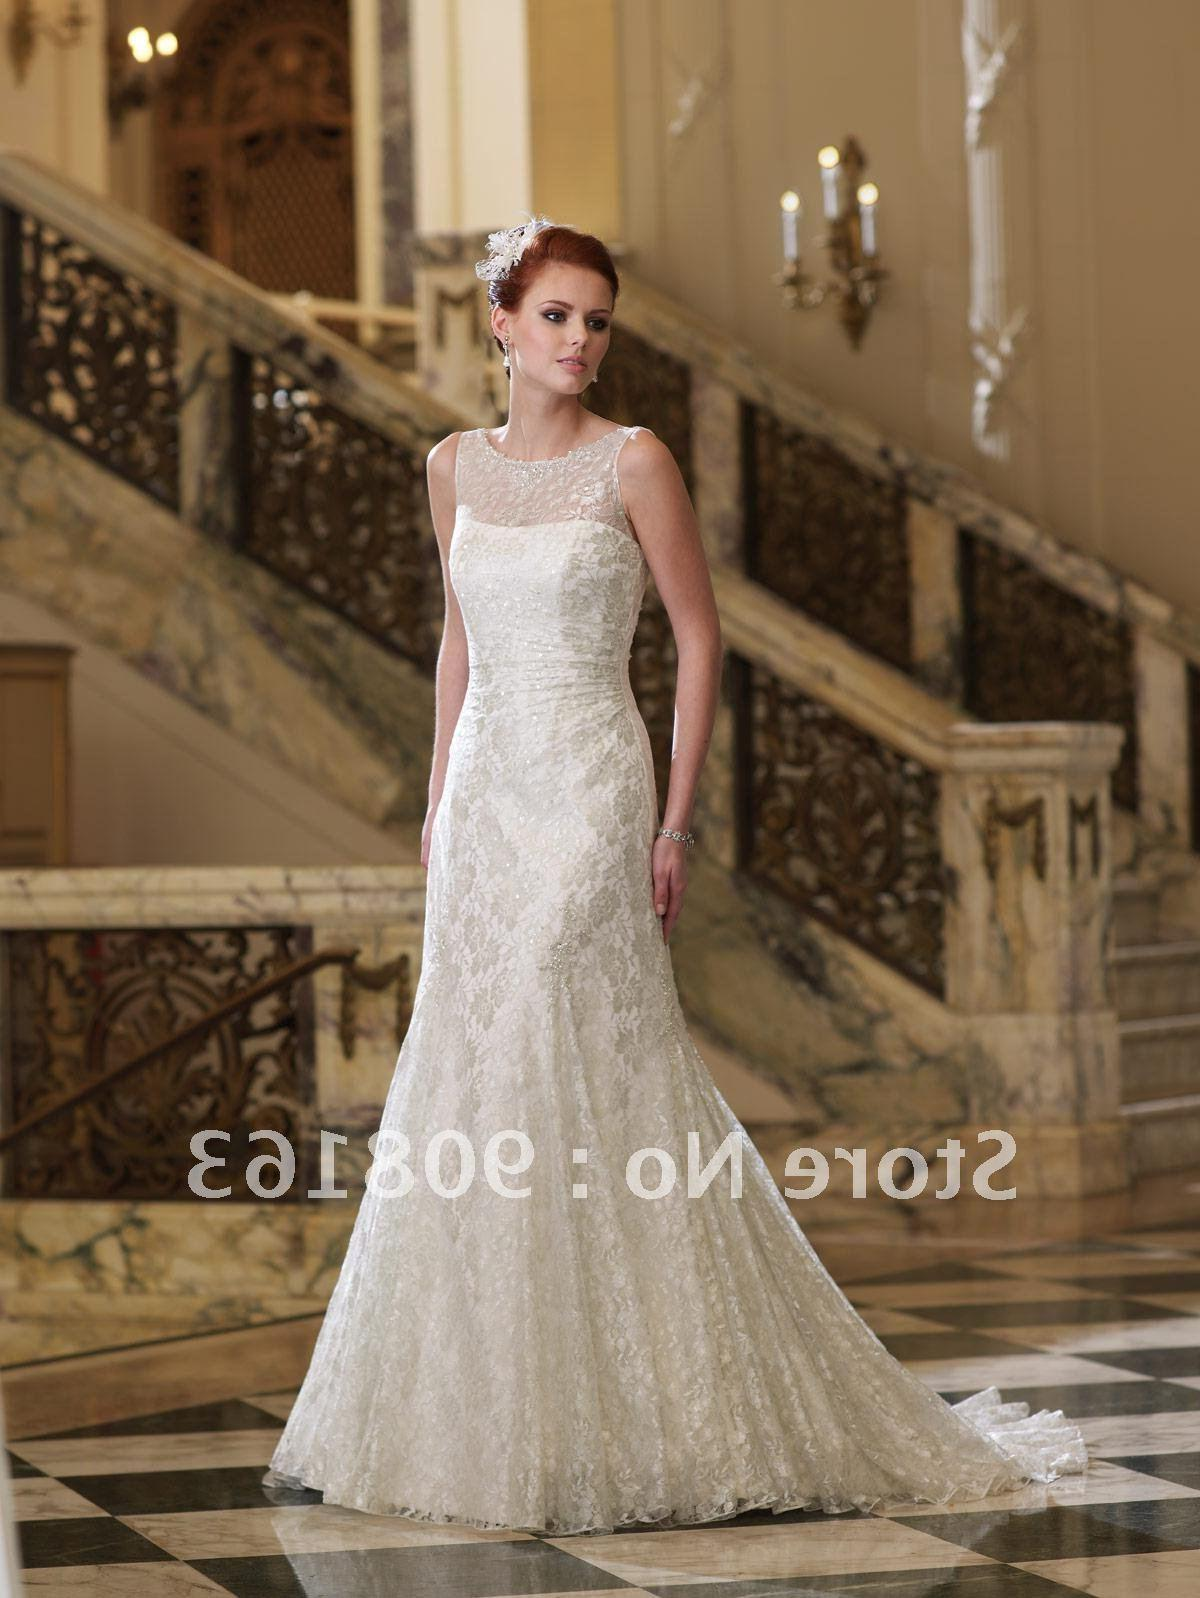 Buy Wedding Gowns 2011, low bacfk wedding gowns, stylish wedding gowns,